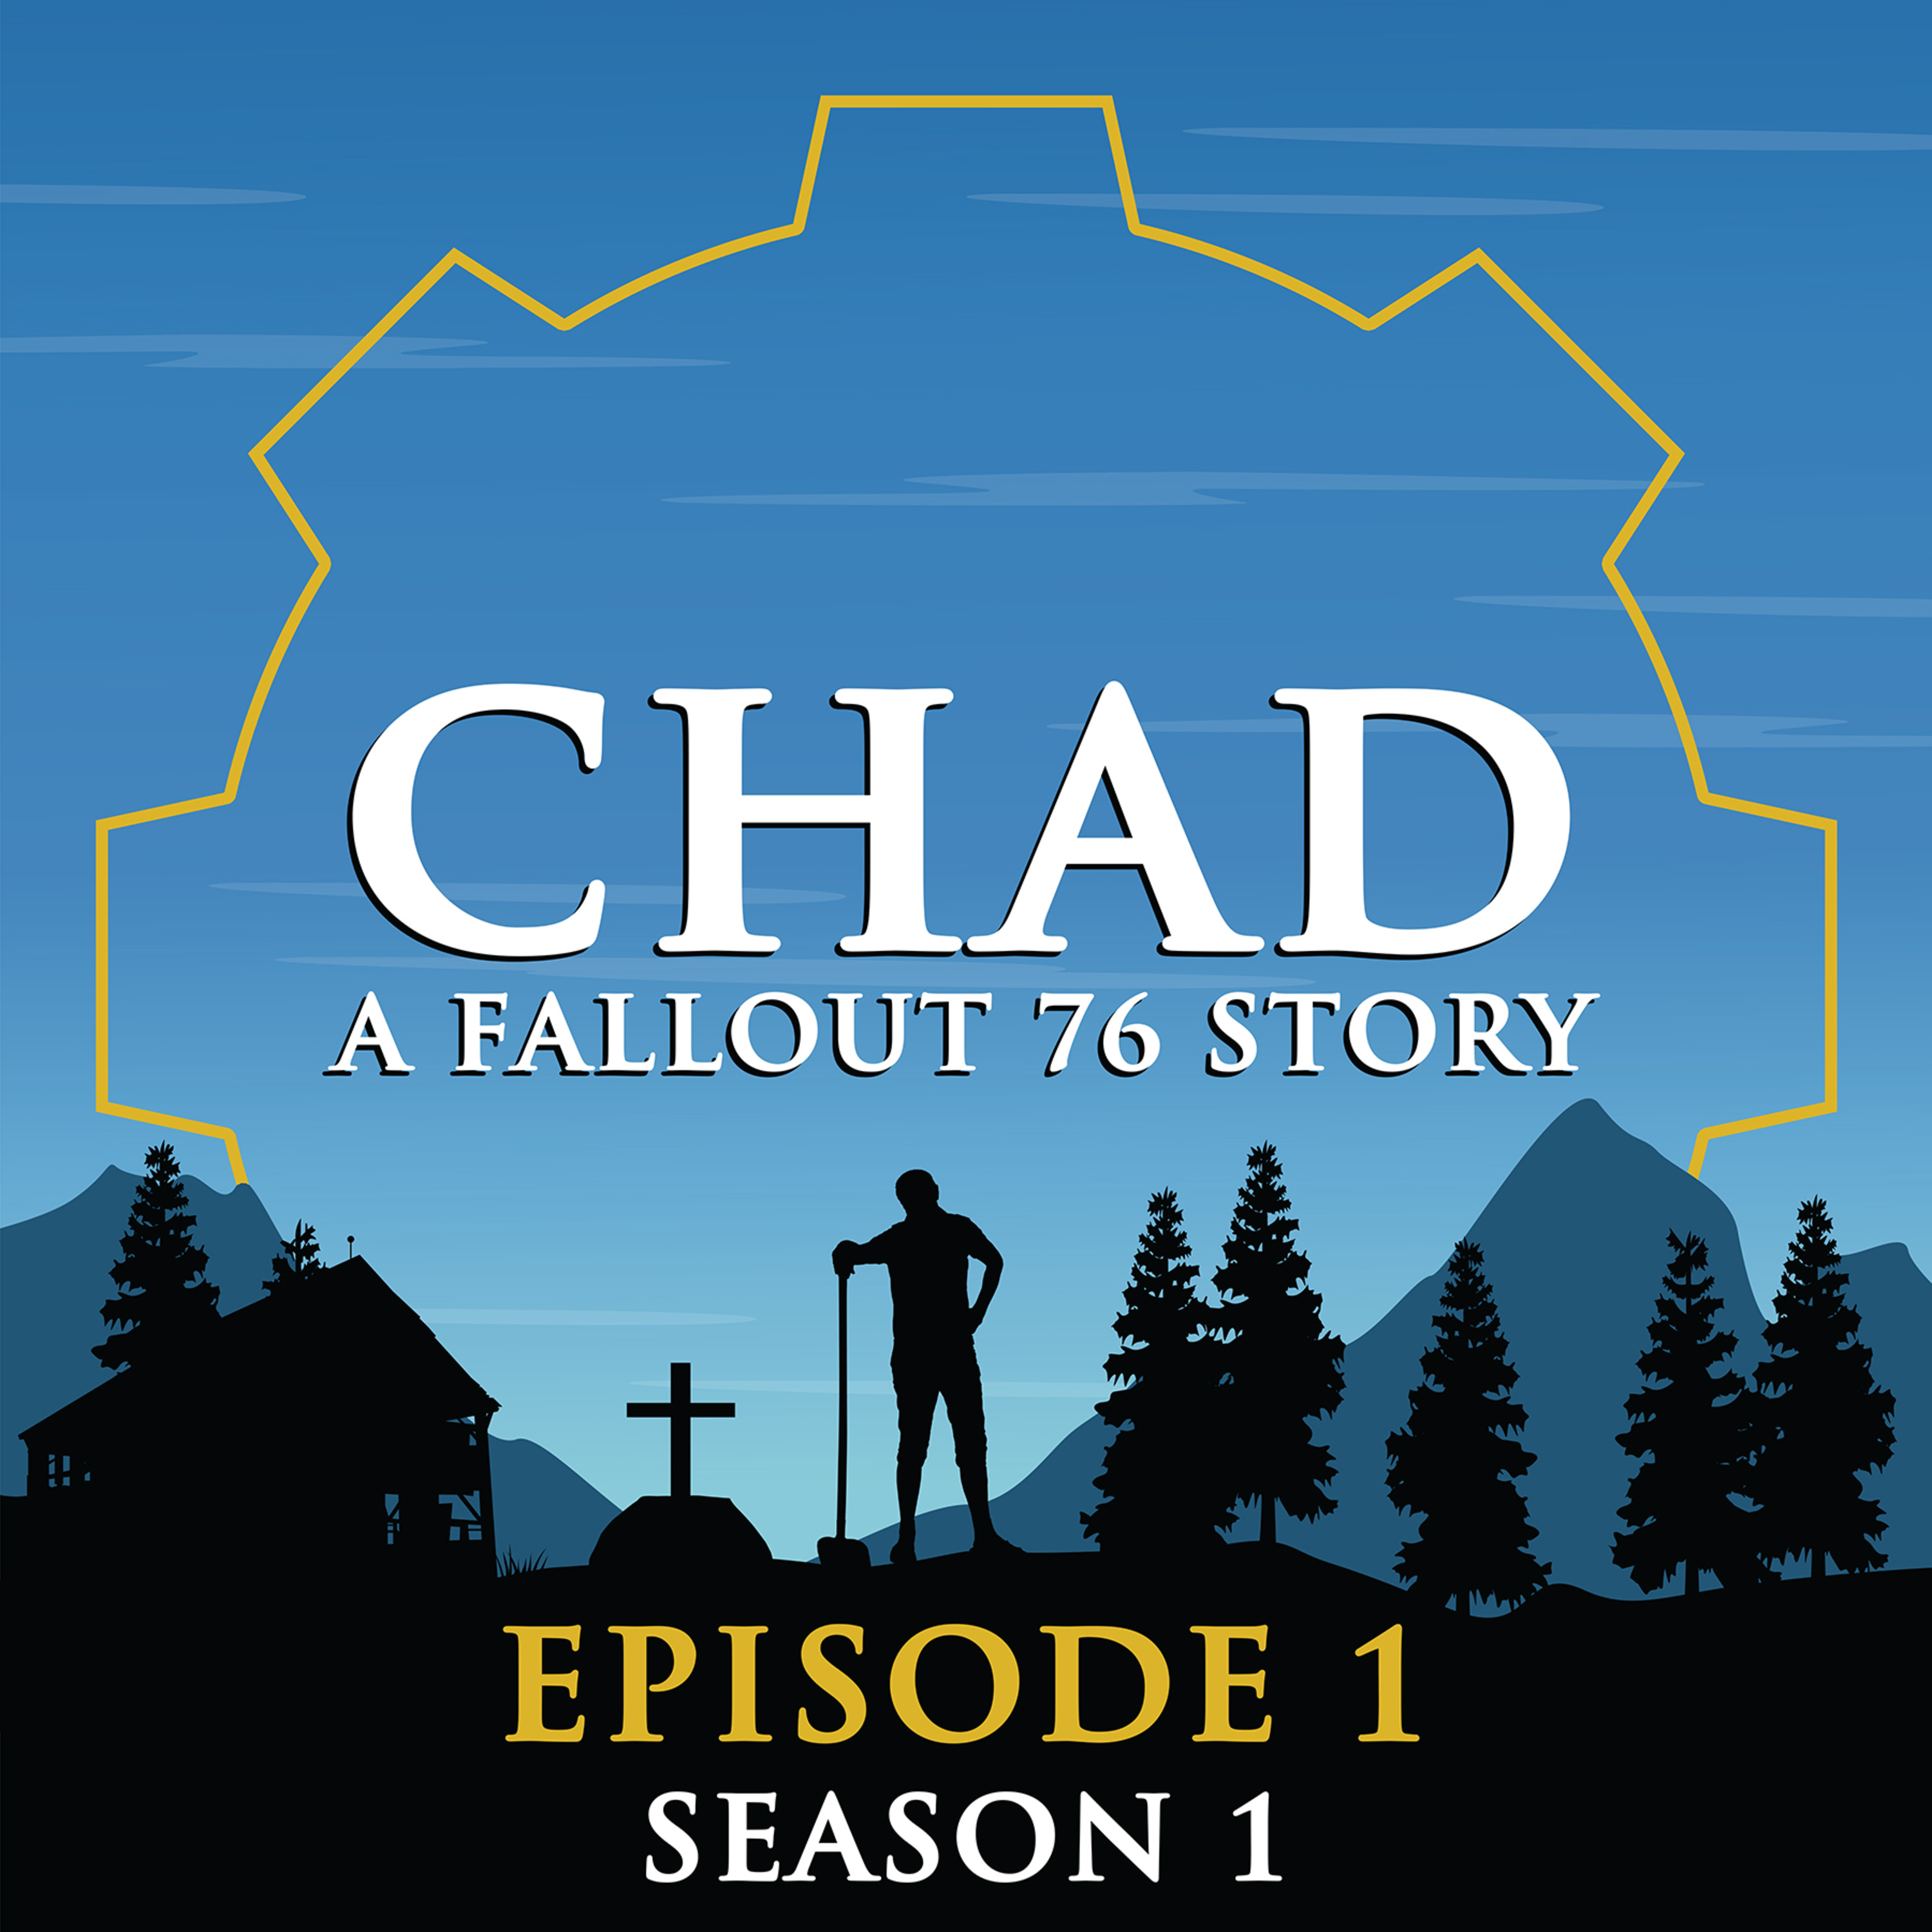 CHAD: A Fallout 76 Story ~ S1E1: His name was Chad...